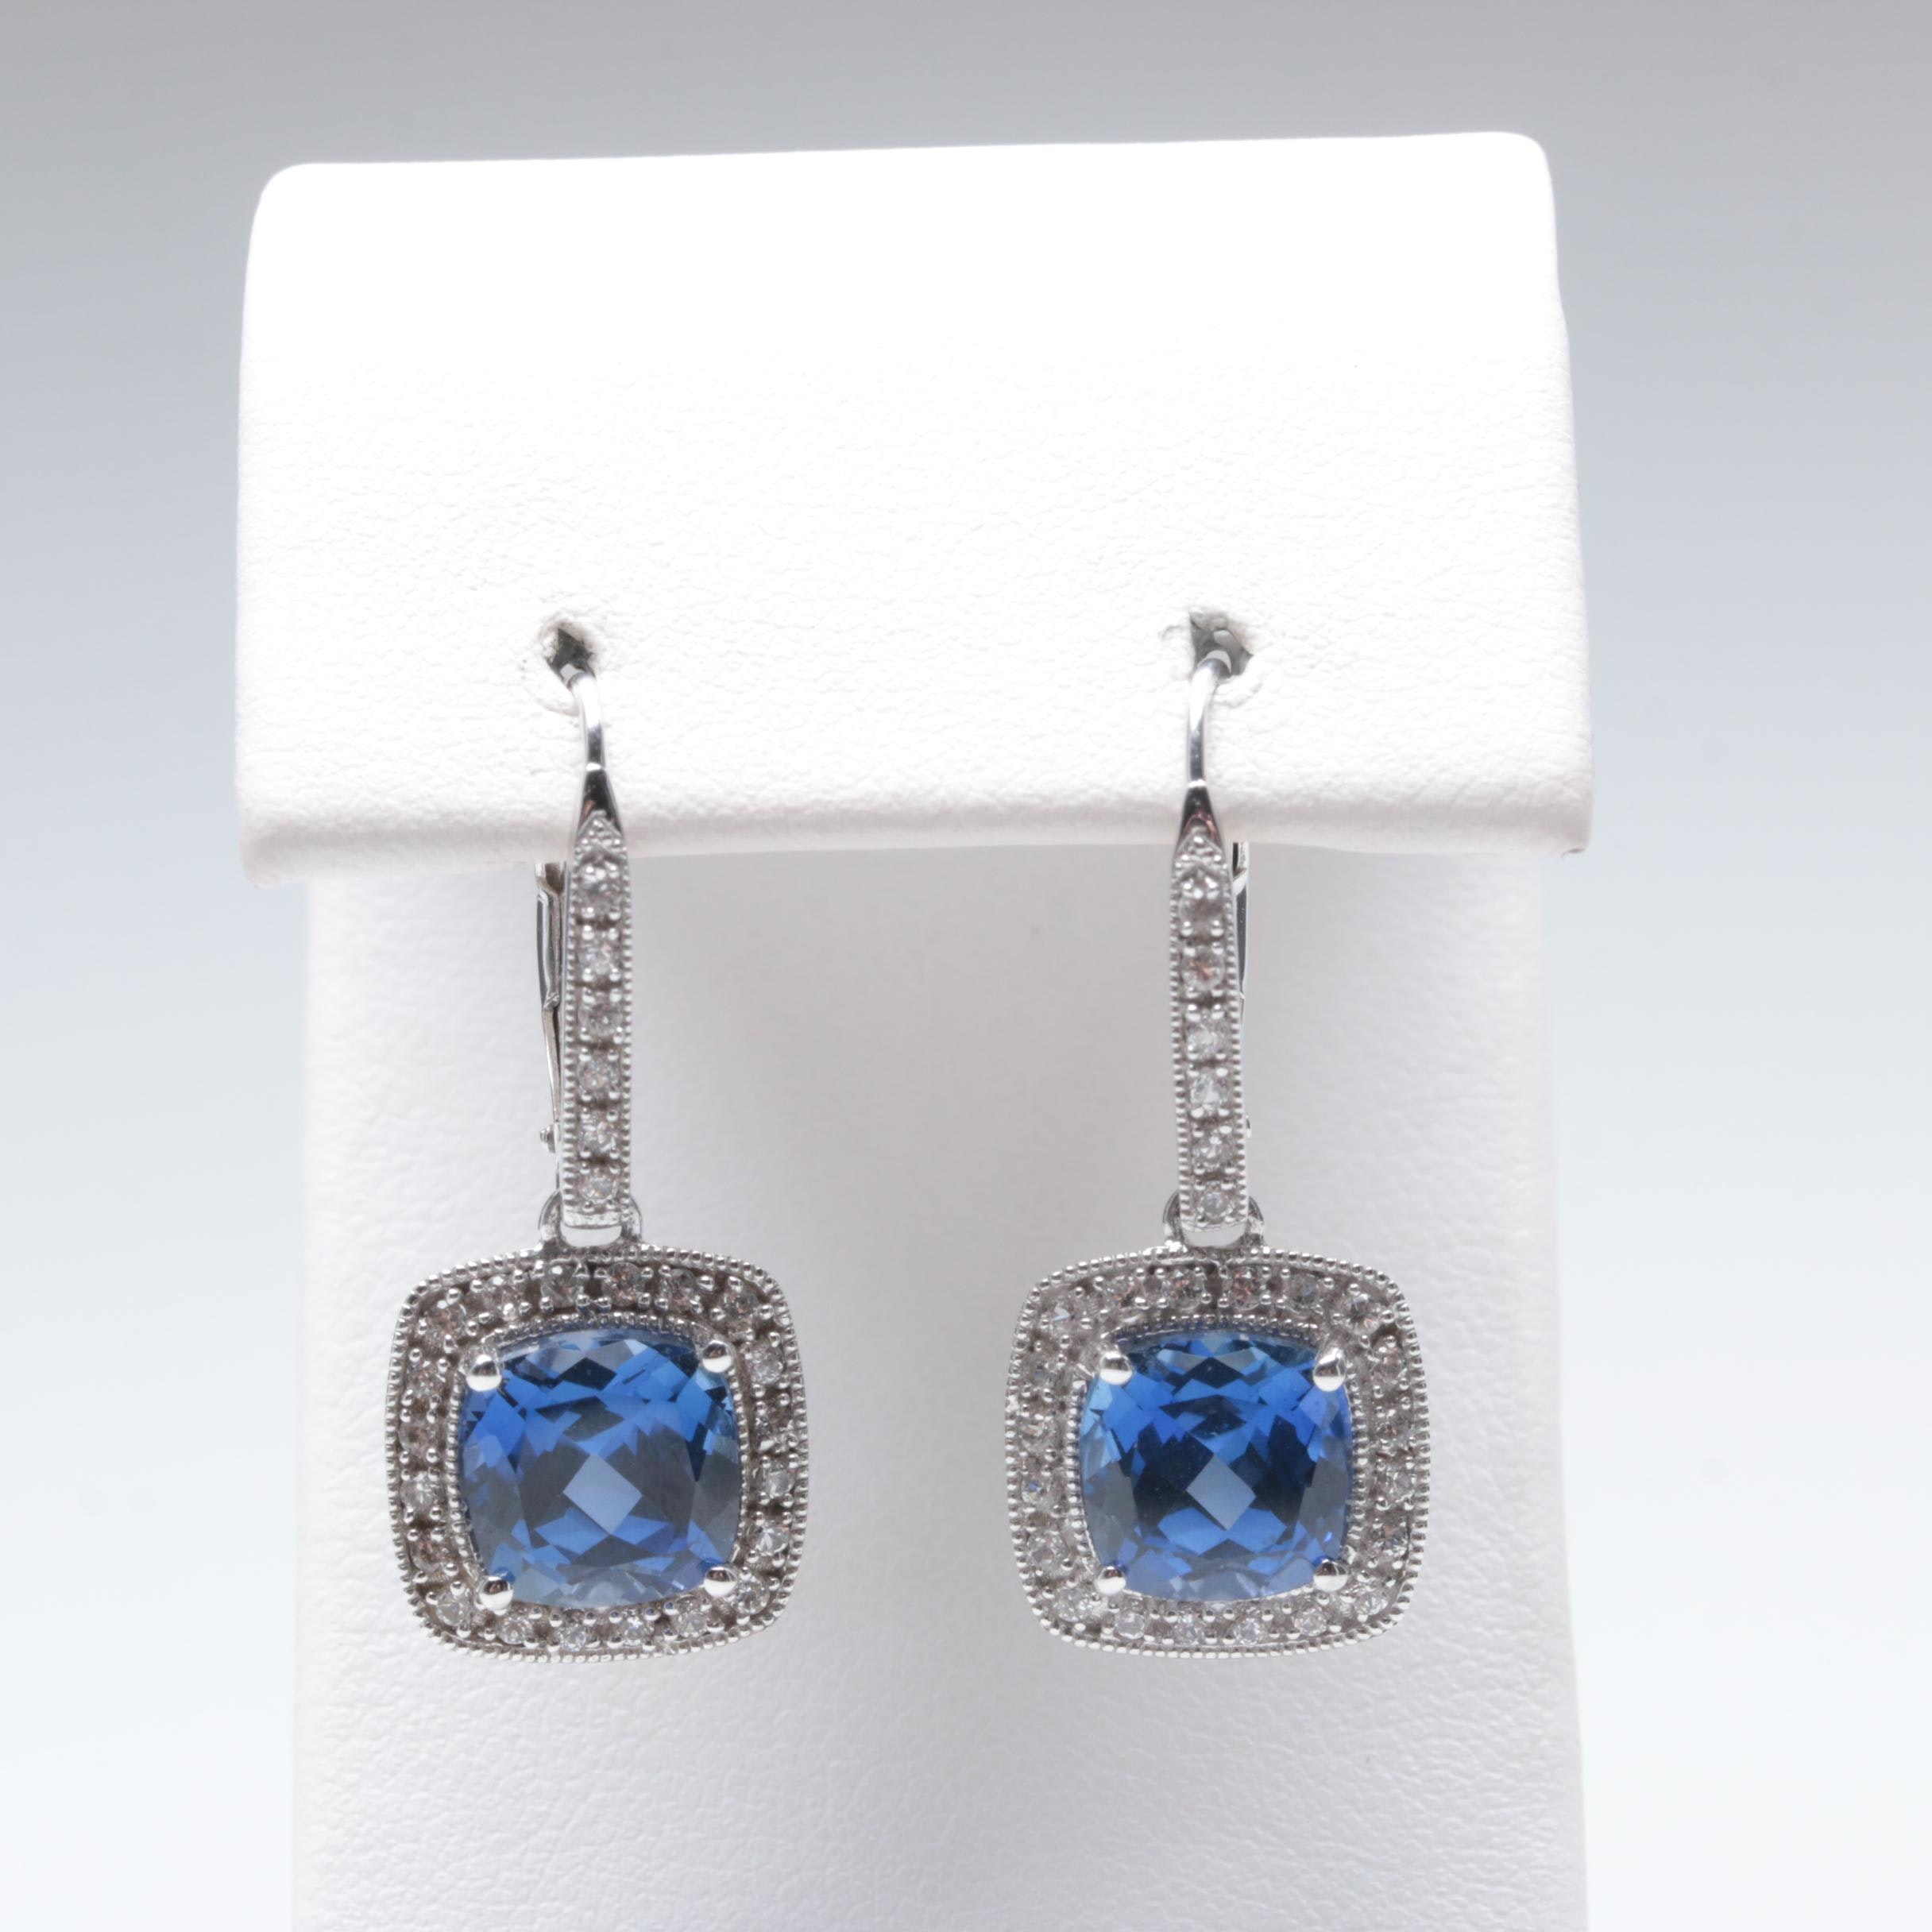 14K White Gold Synthetic Sapphire and White Sapphire Earrings